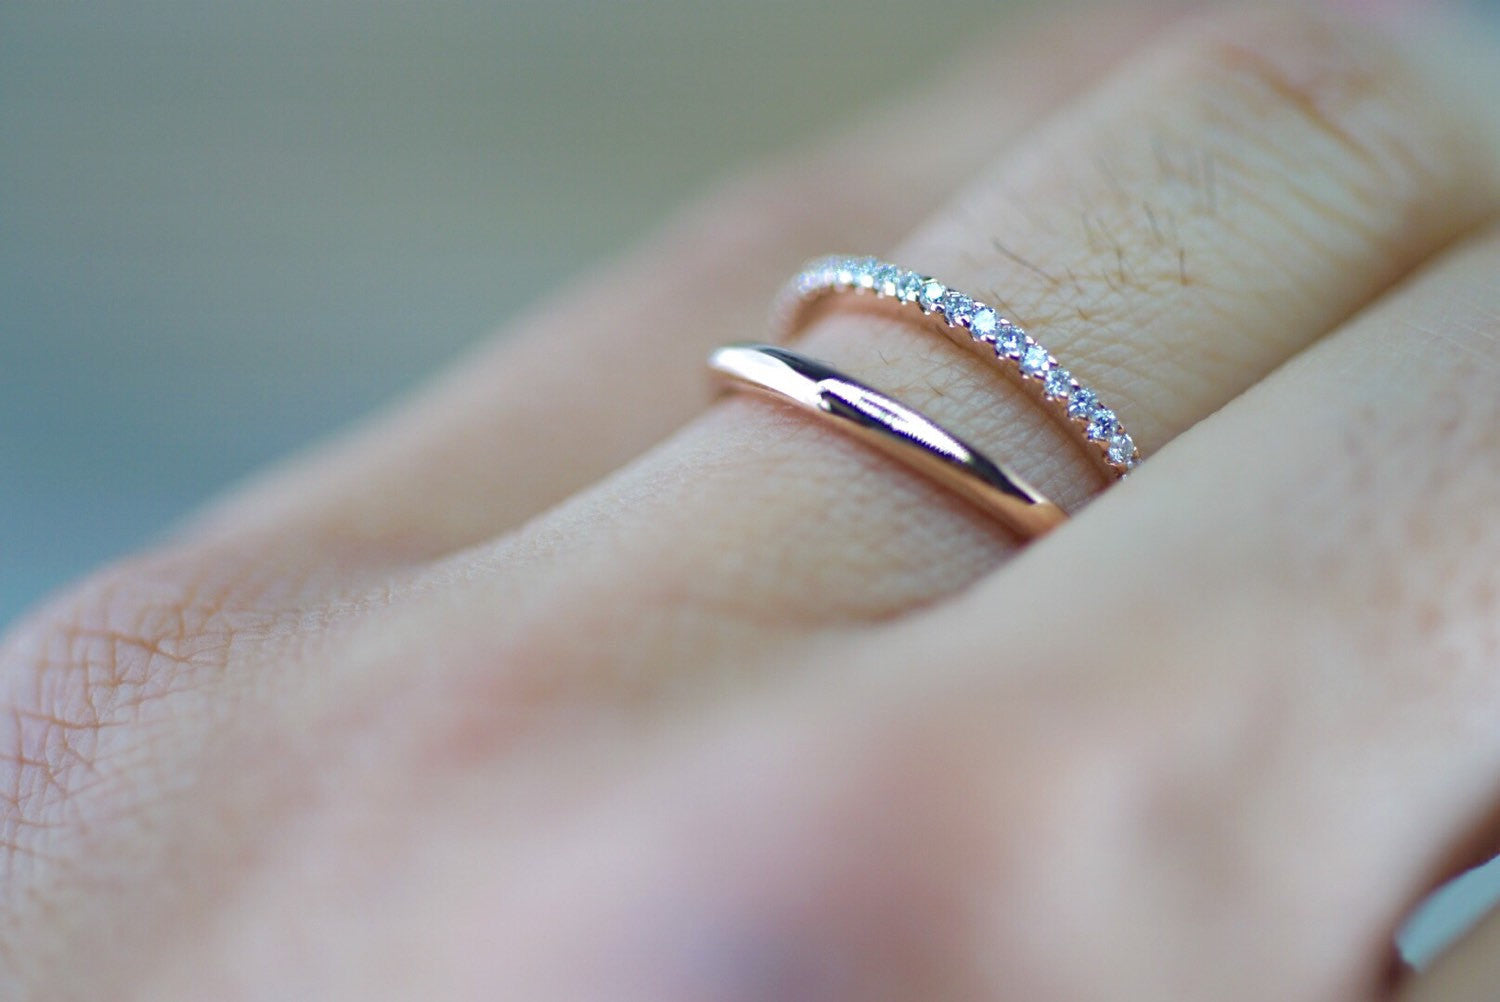 14k rose gold band and diamond ring wedding band double row curve open ring - Engagement Ring And Wedding Band